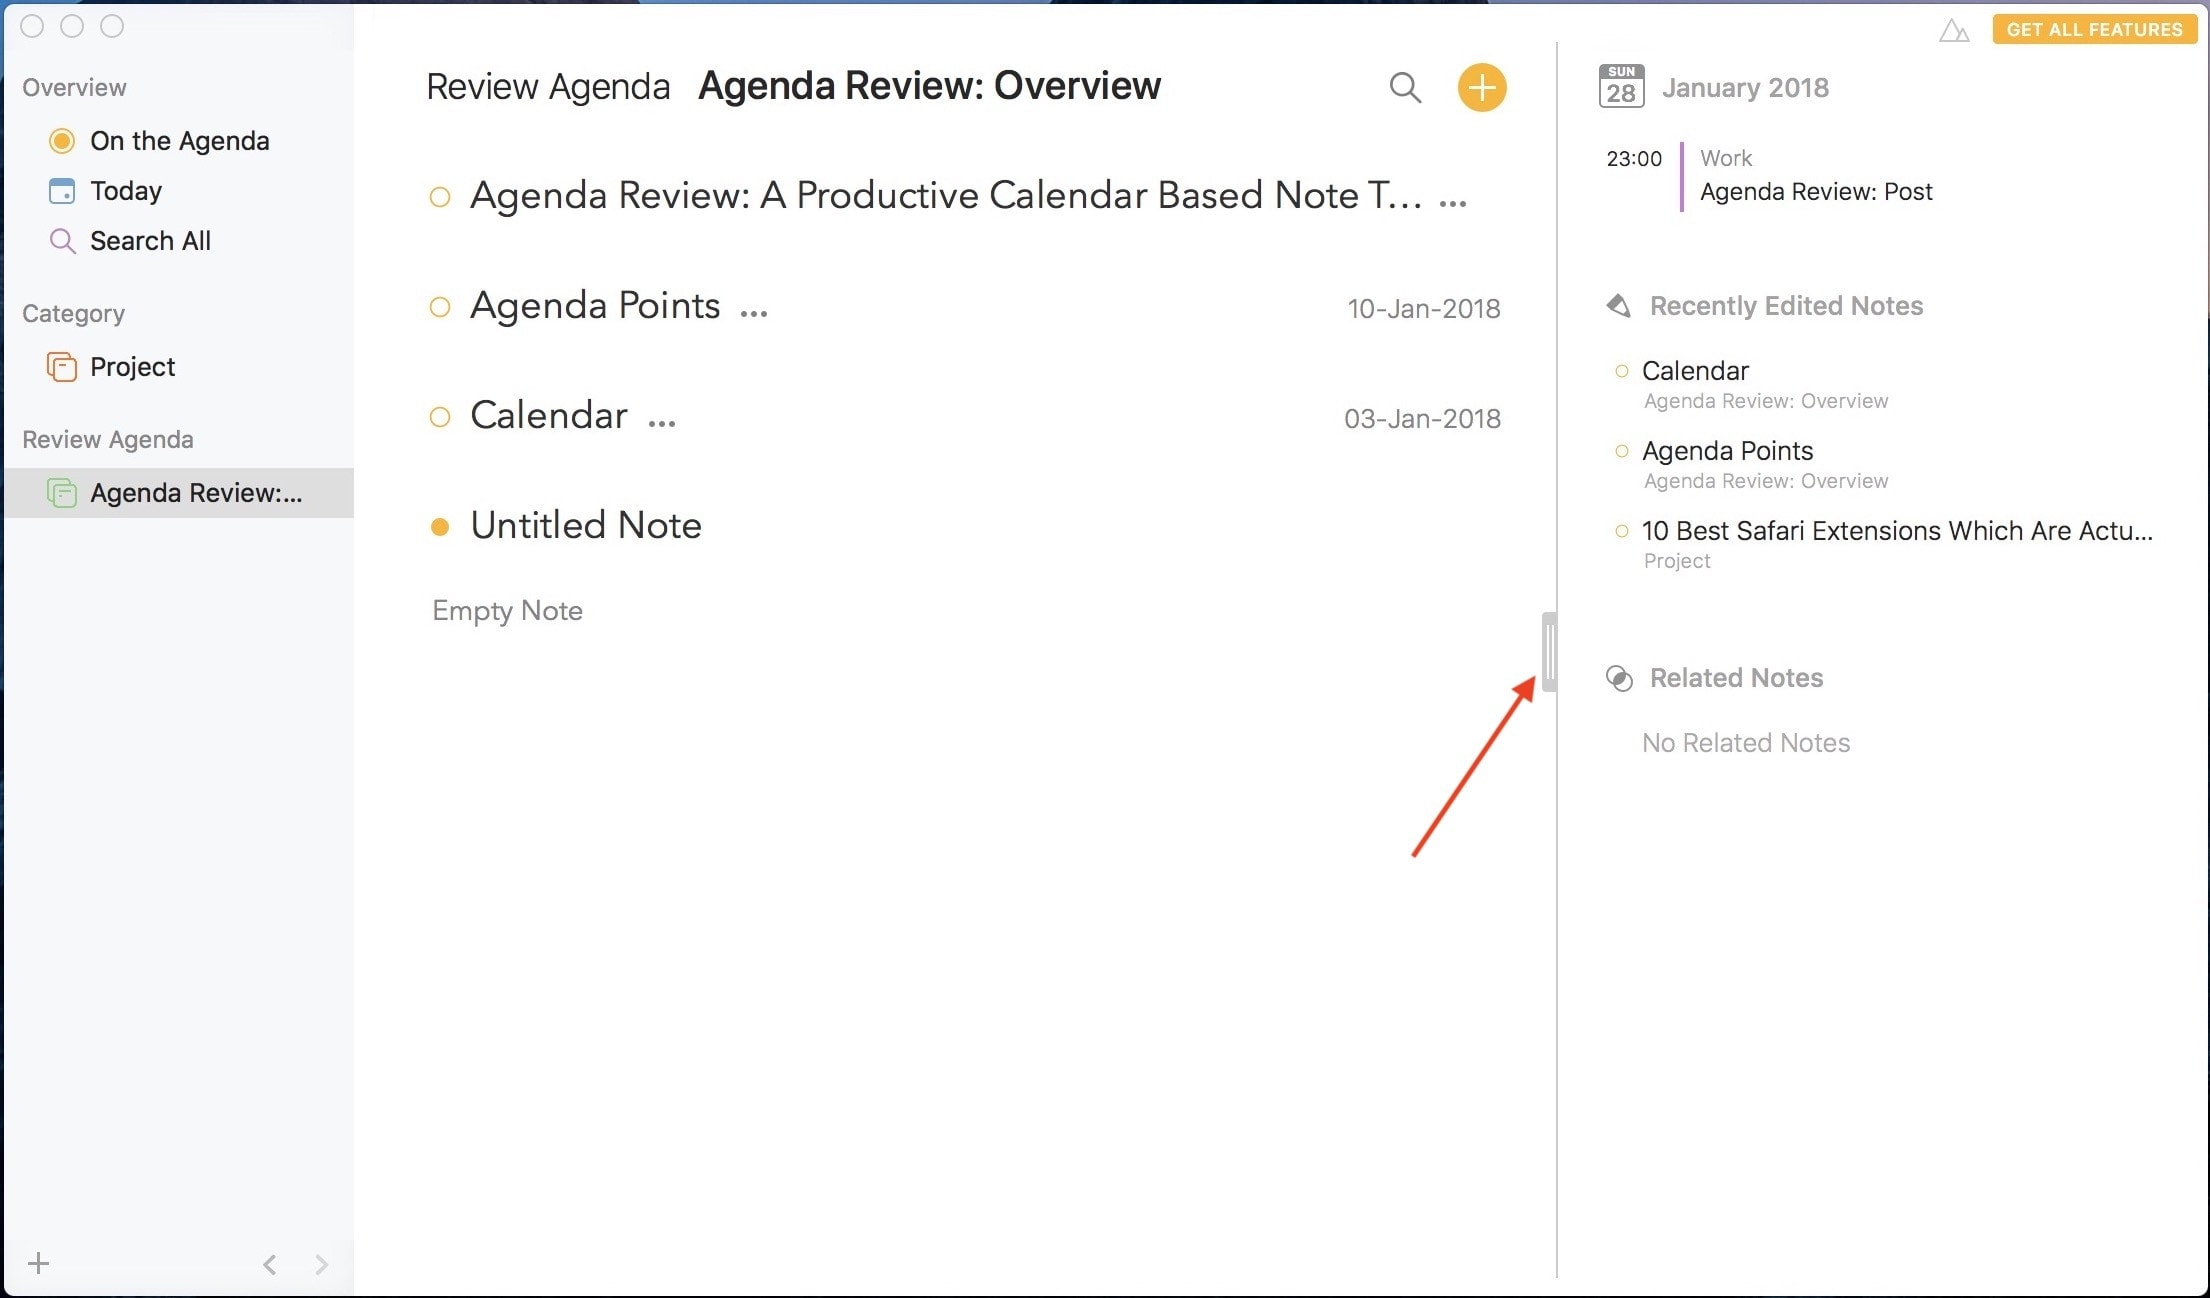 Agenda Review  Overview 3.jpg